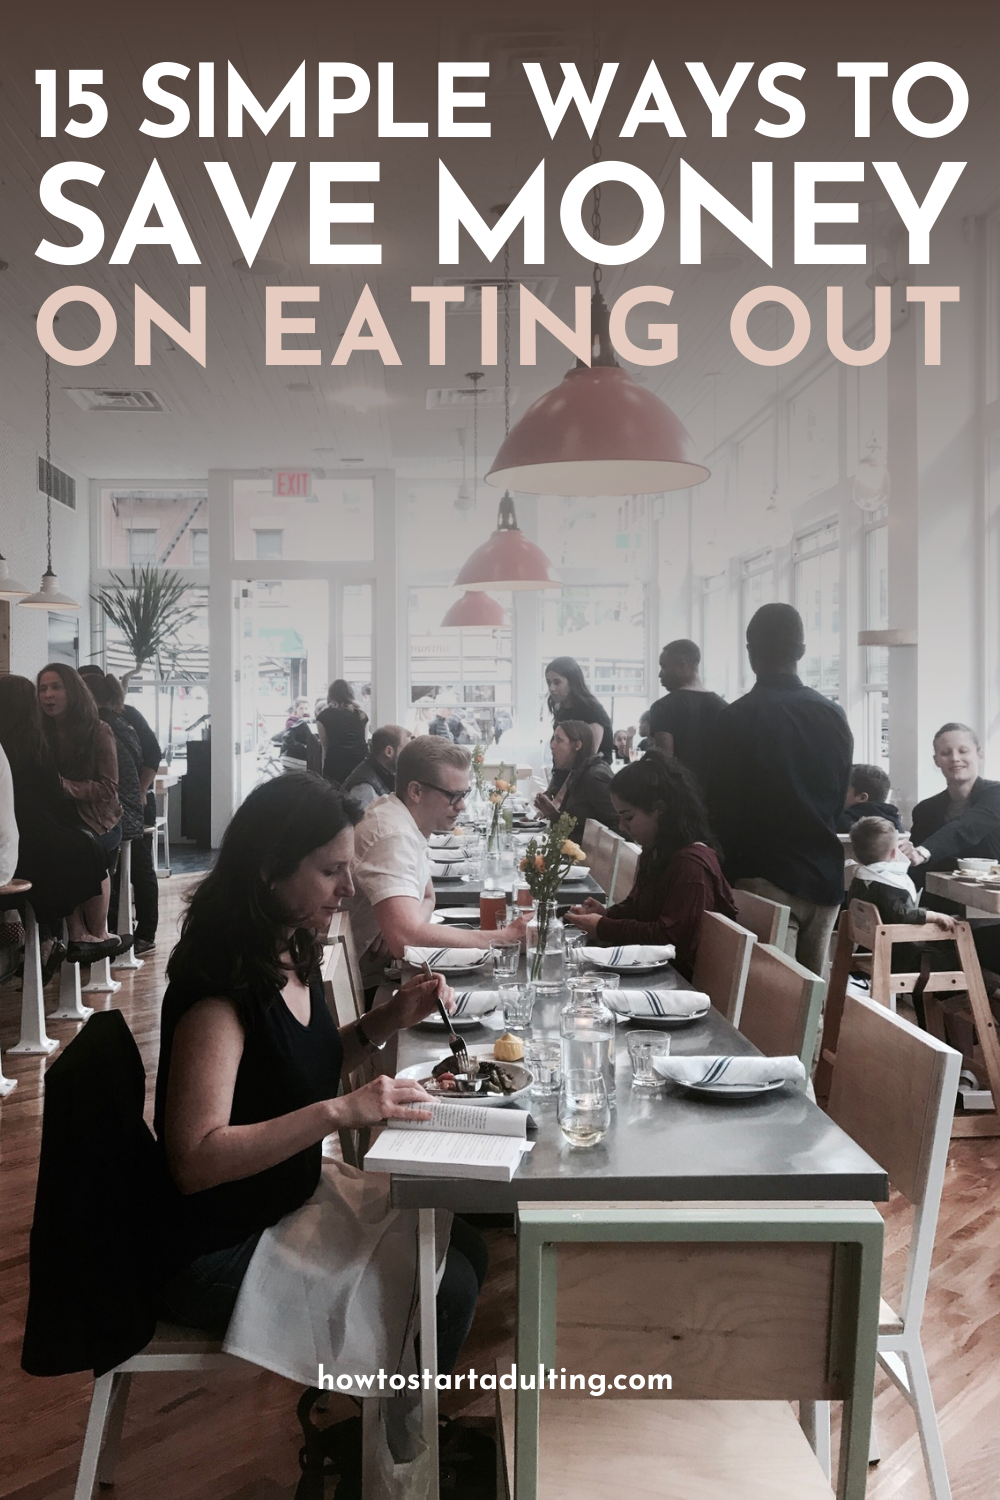 15 Simple Ways To Save Money When Eating Out, Tips for eating out on a budget